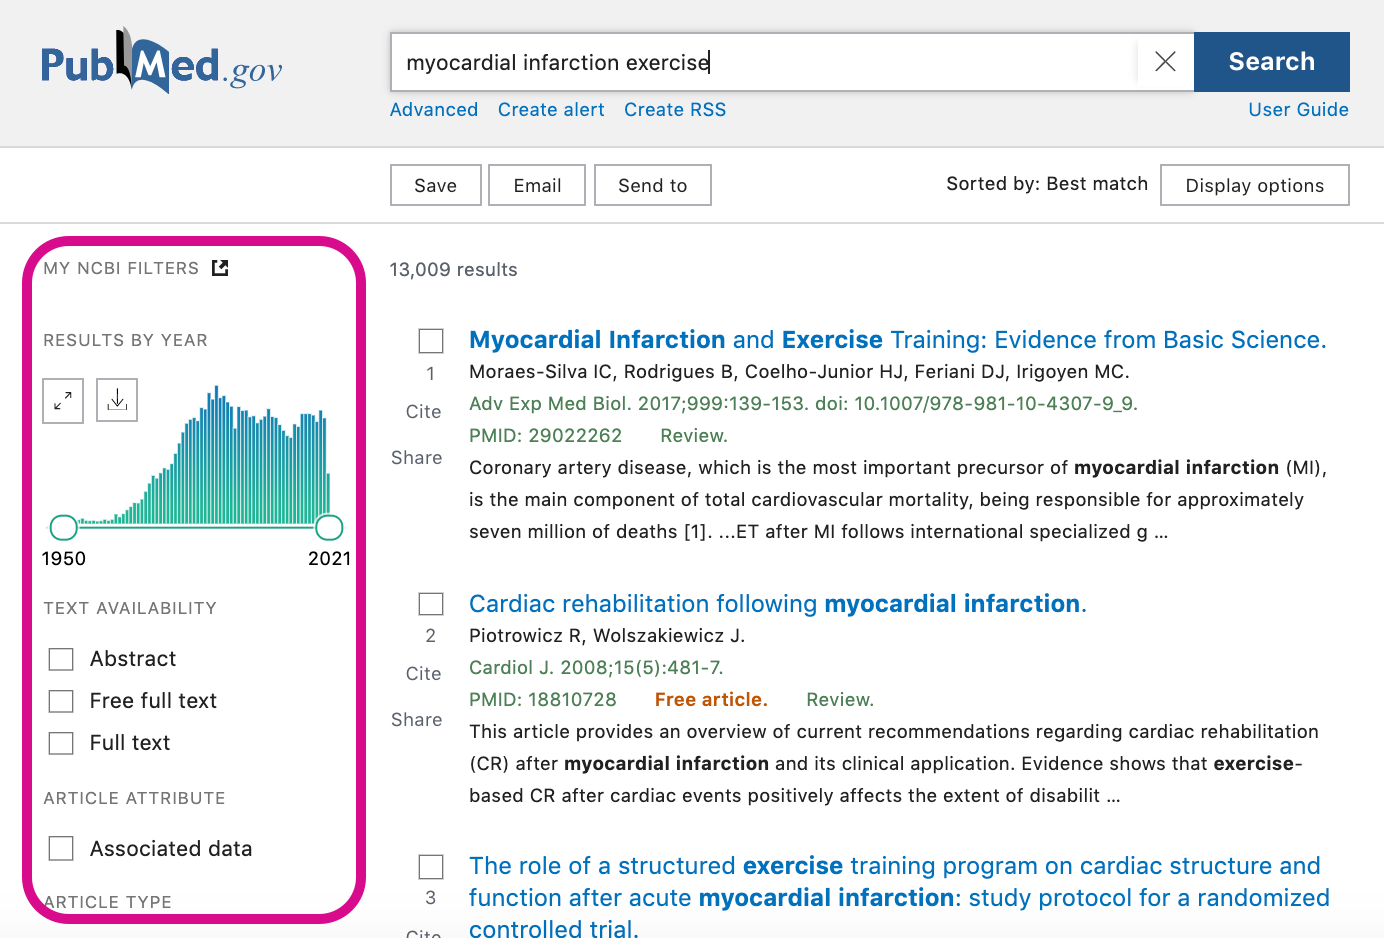 Screenshot showing PubMed's search filters bar to the left on the search results page